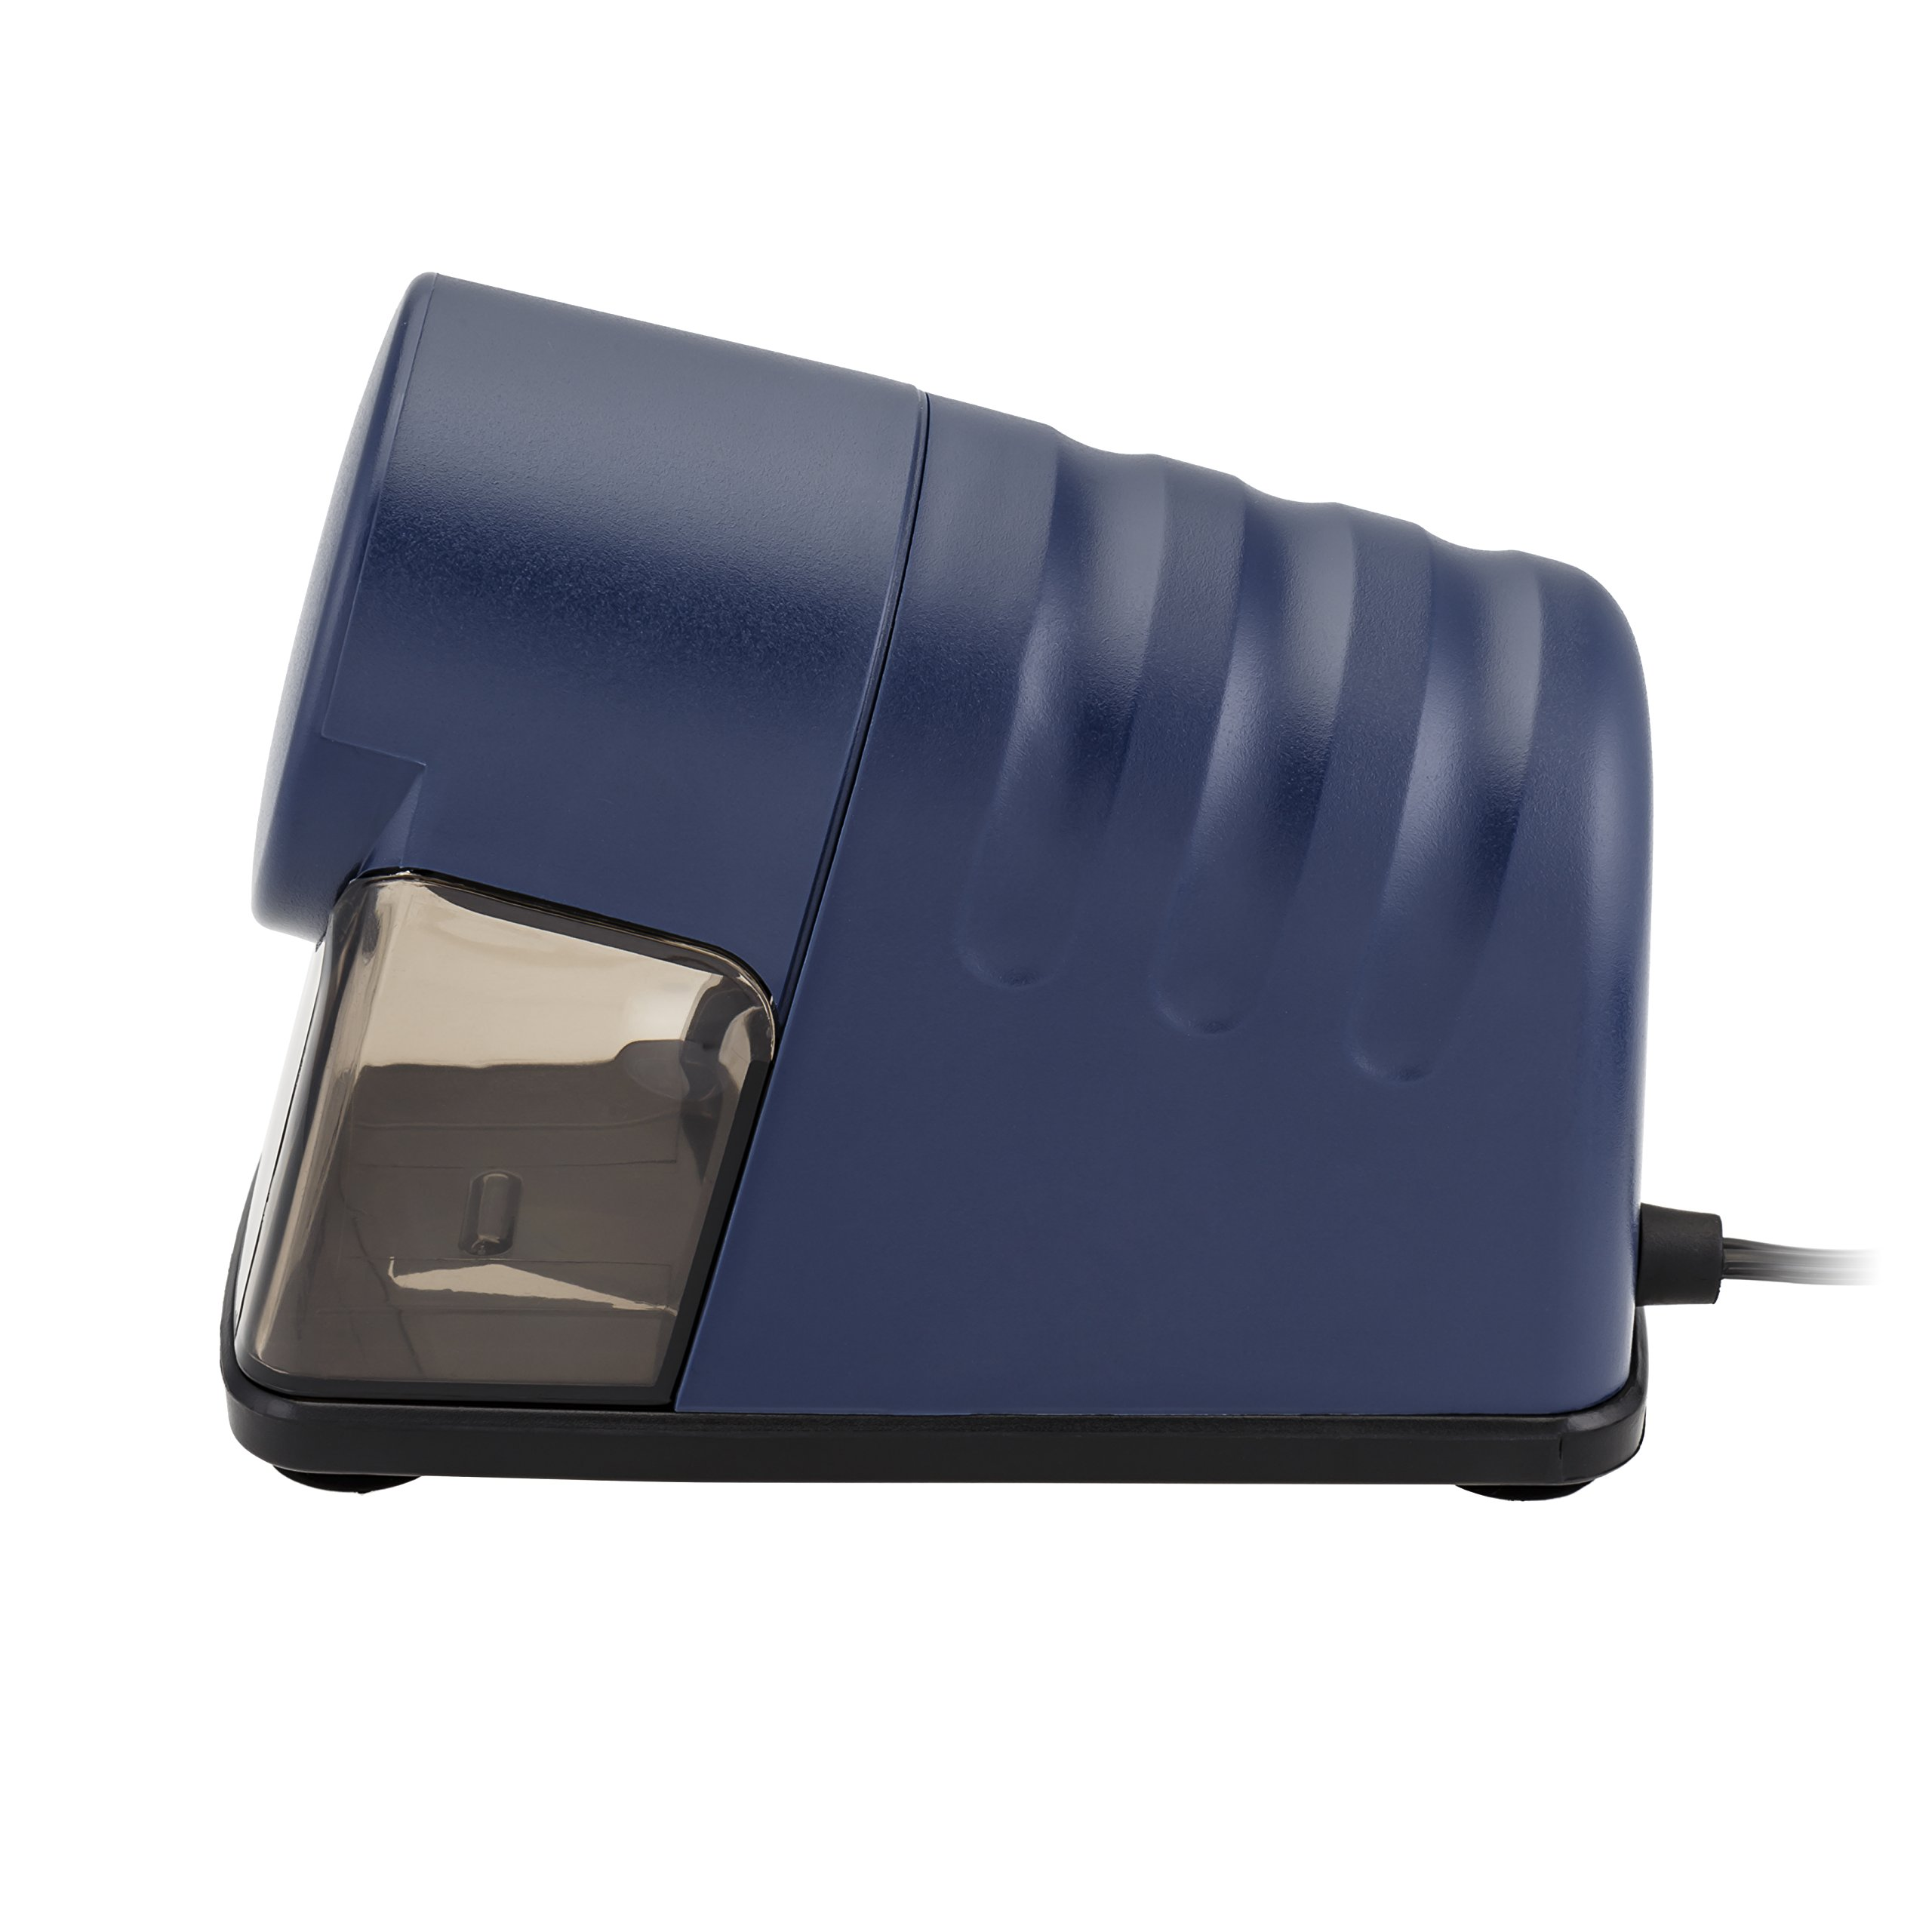 X-ACTO Powerhouse Electric Pencil Sharpener, Navy Blue by X-Acto (Image #3)